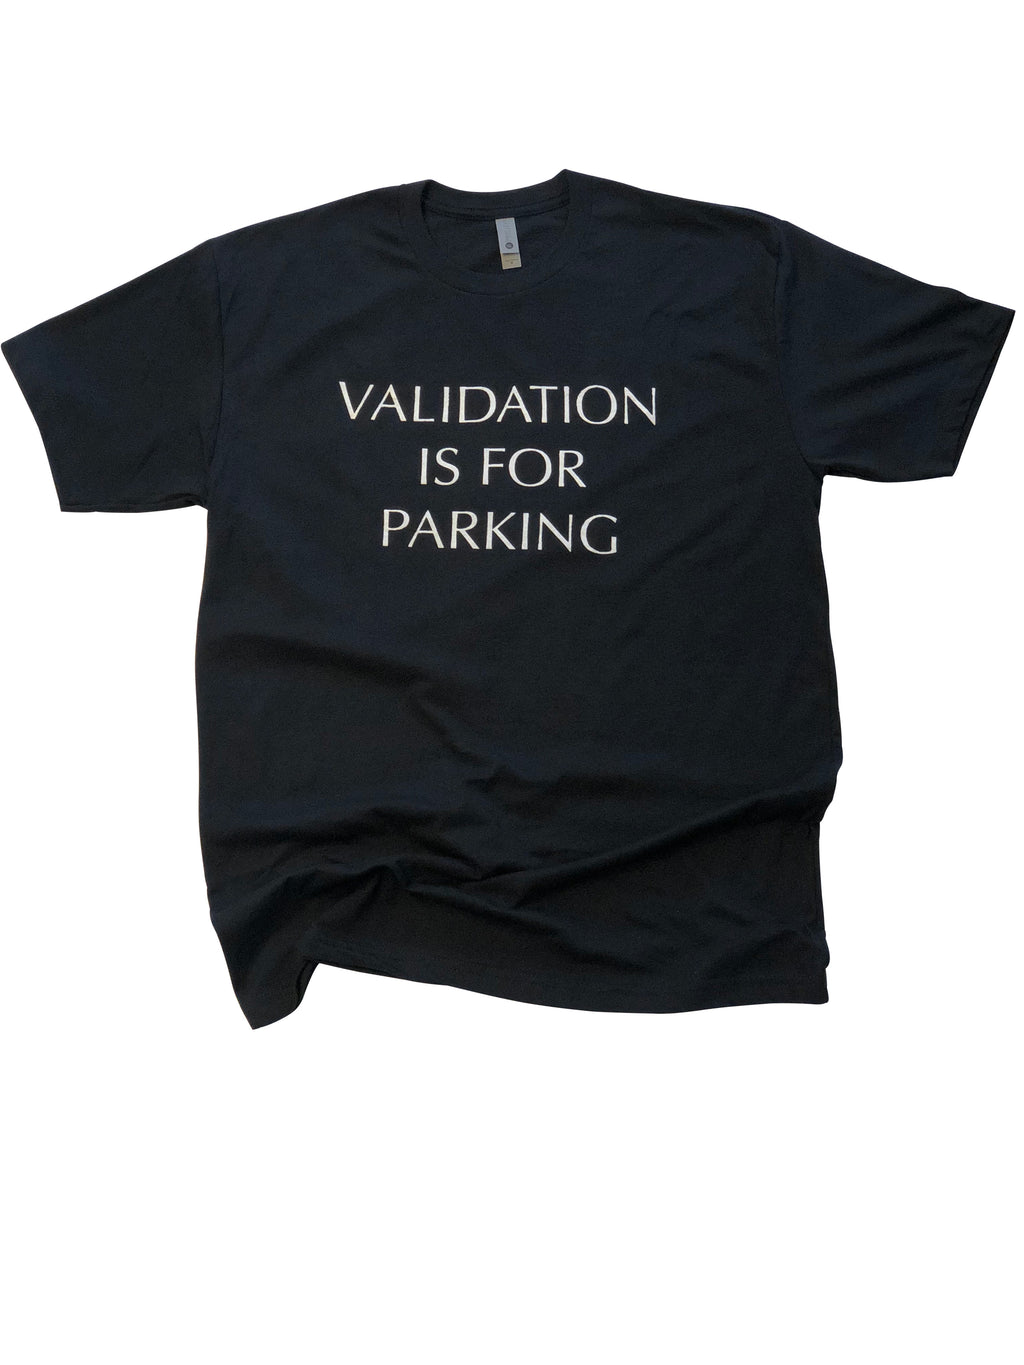 Validation Is For Parking Shirt in Black - Trunk Series, LLC